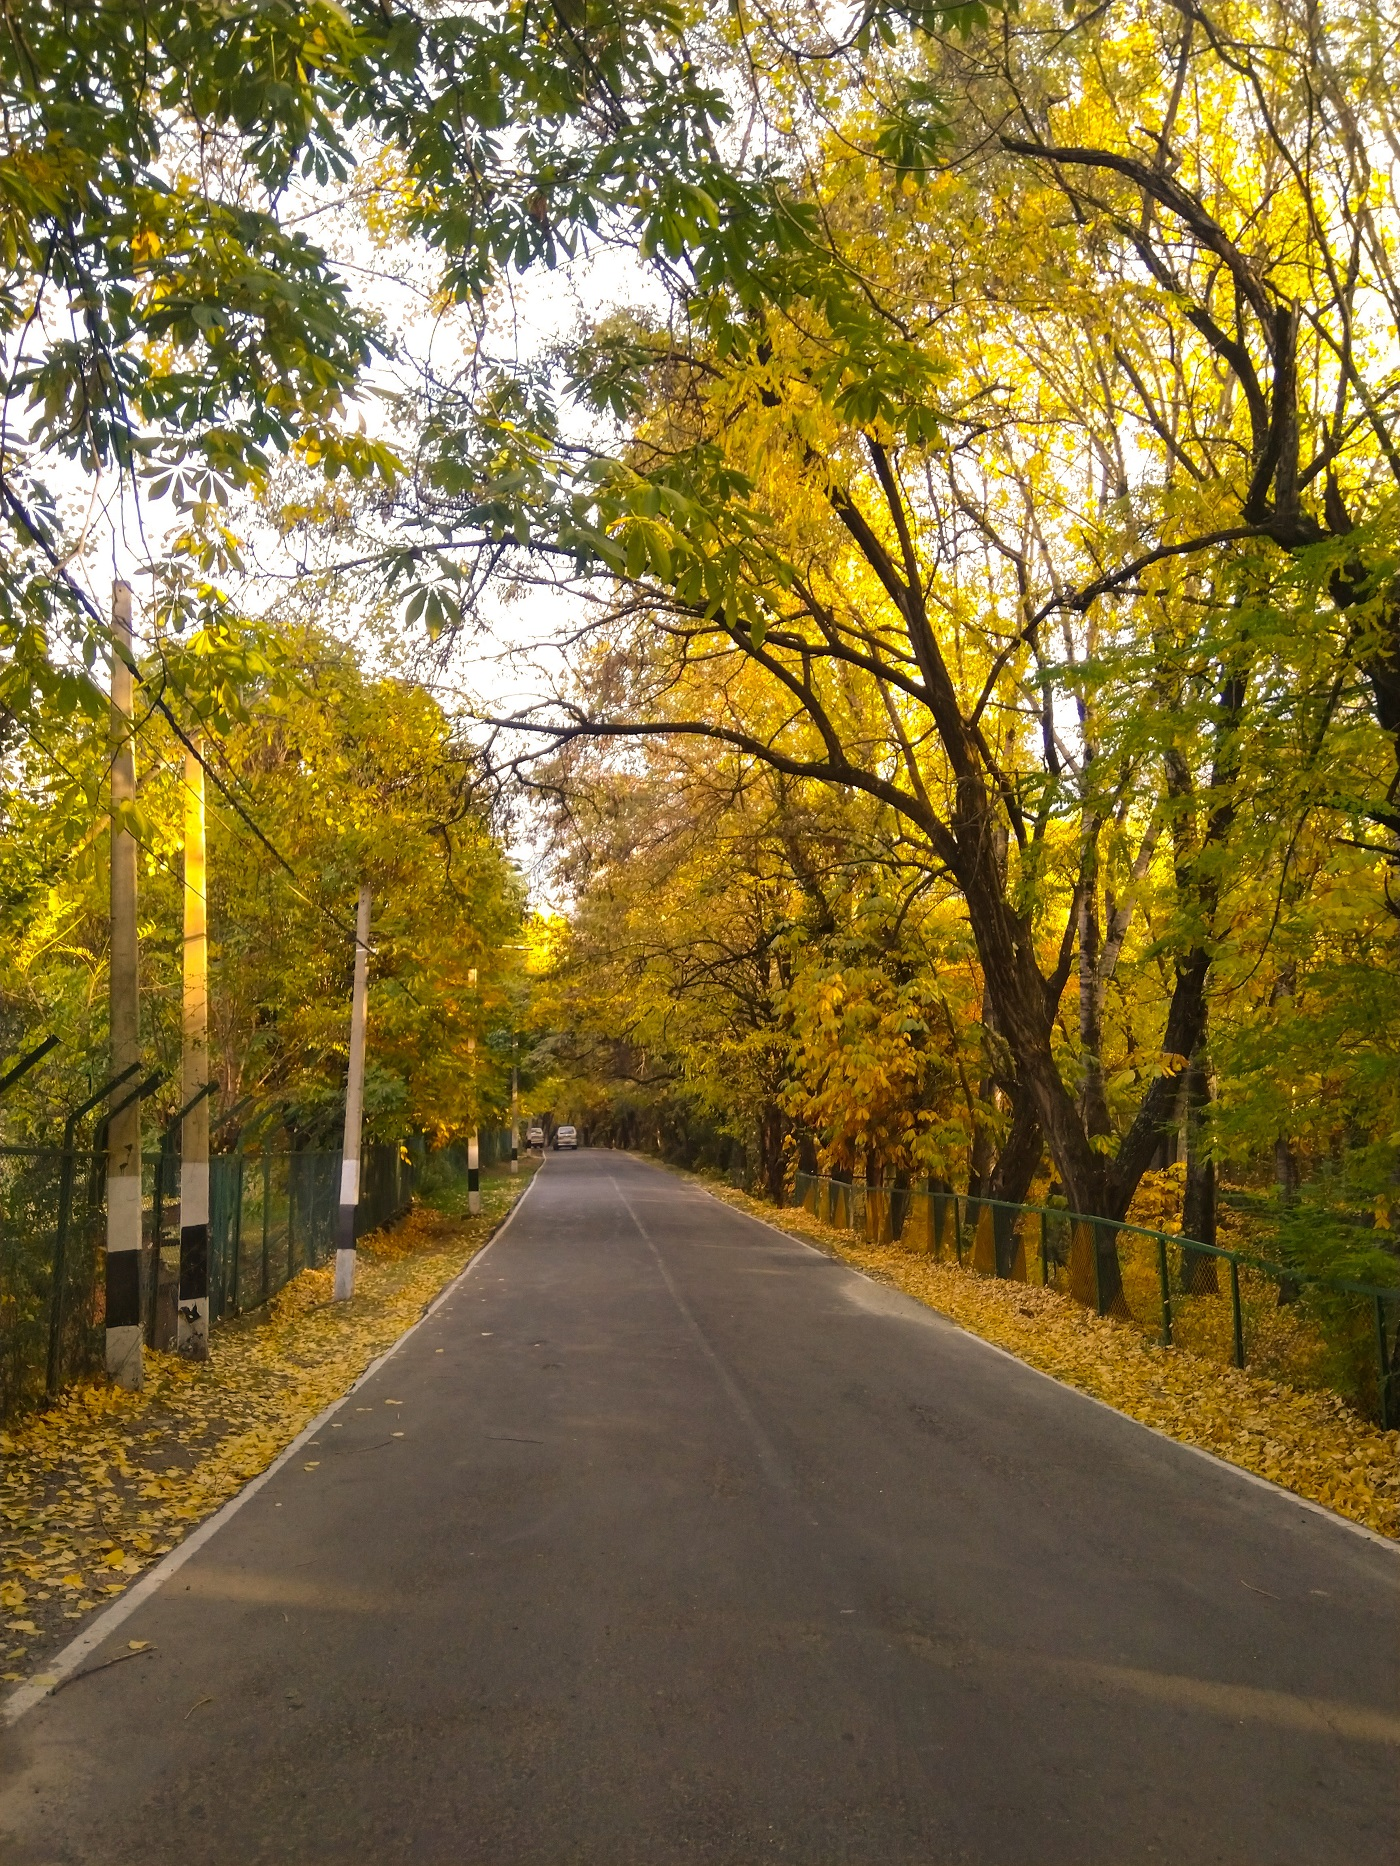 This is the most beautiful road in Srinagar.